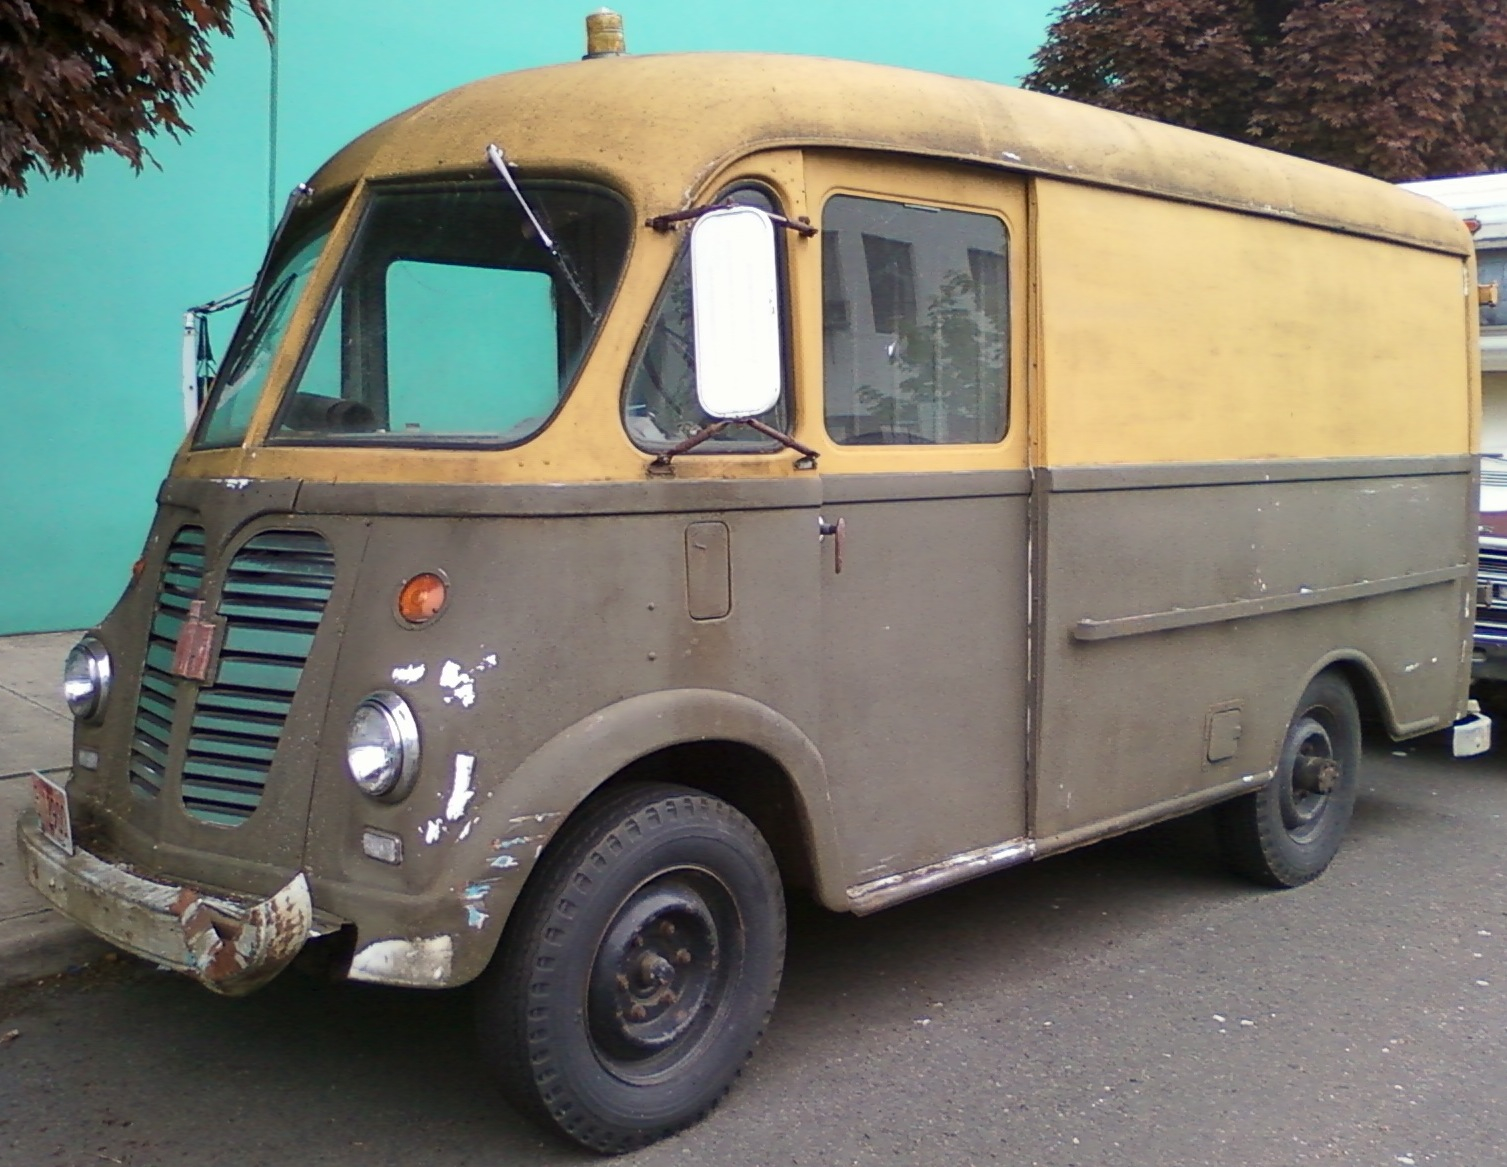 international harvester cars and motorcycles  Pictures and